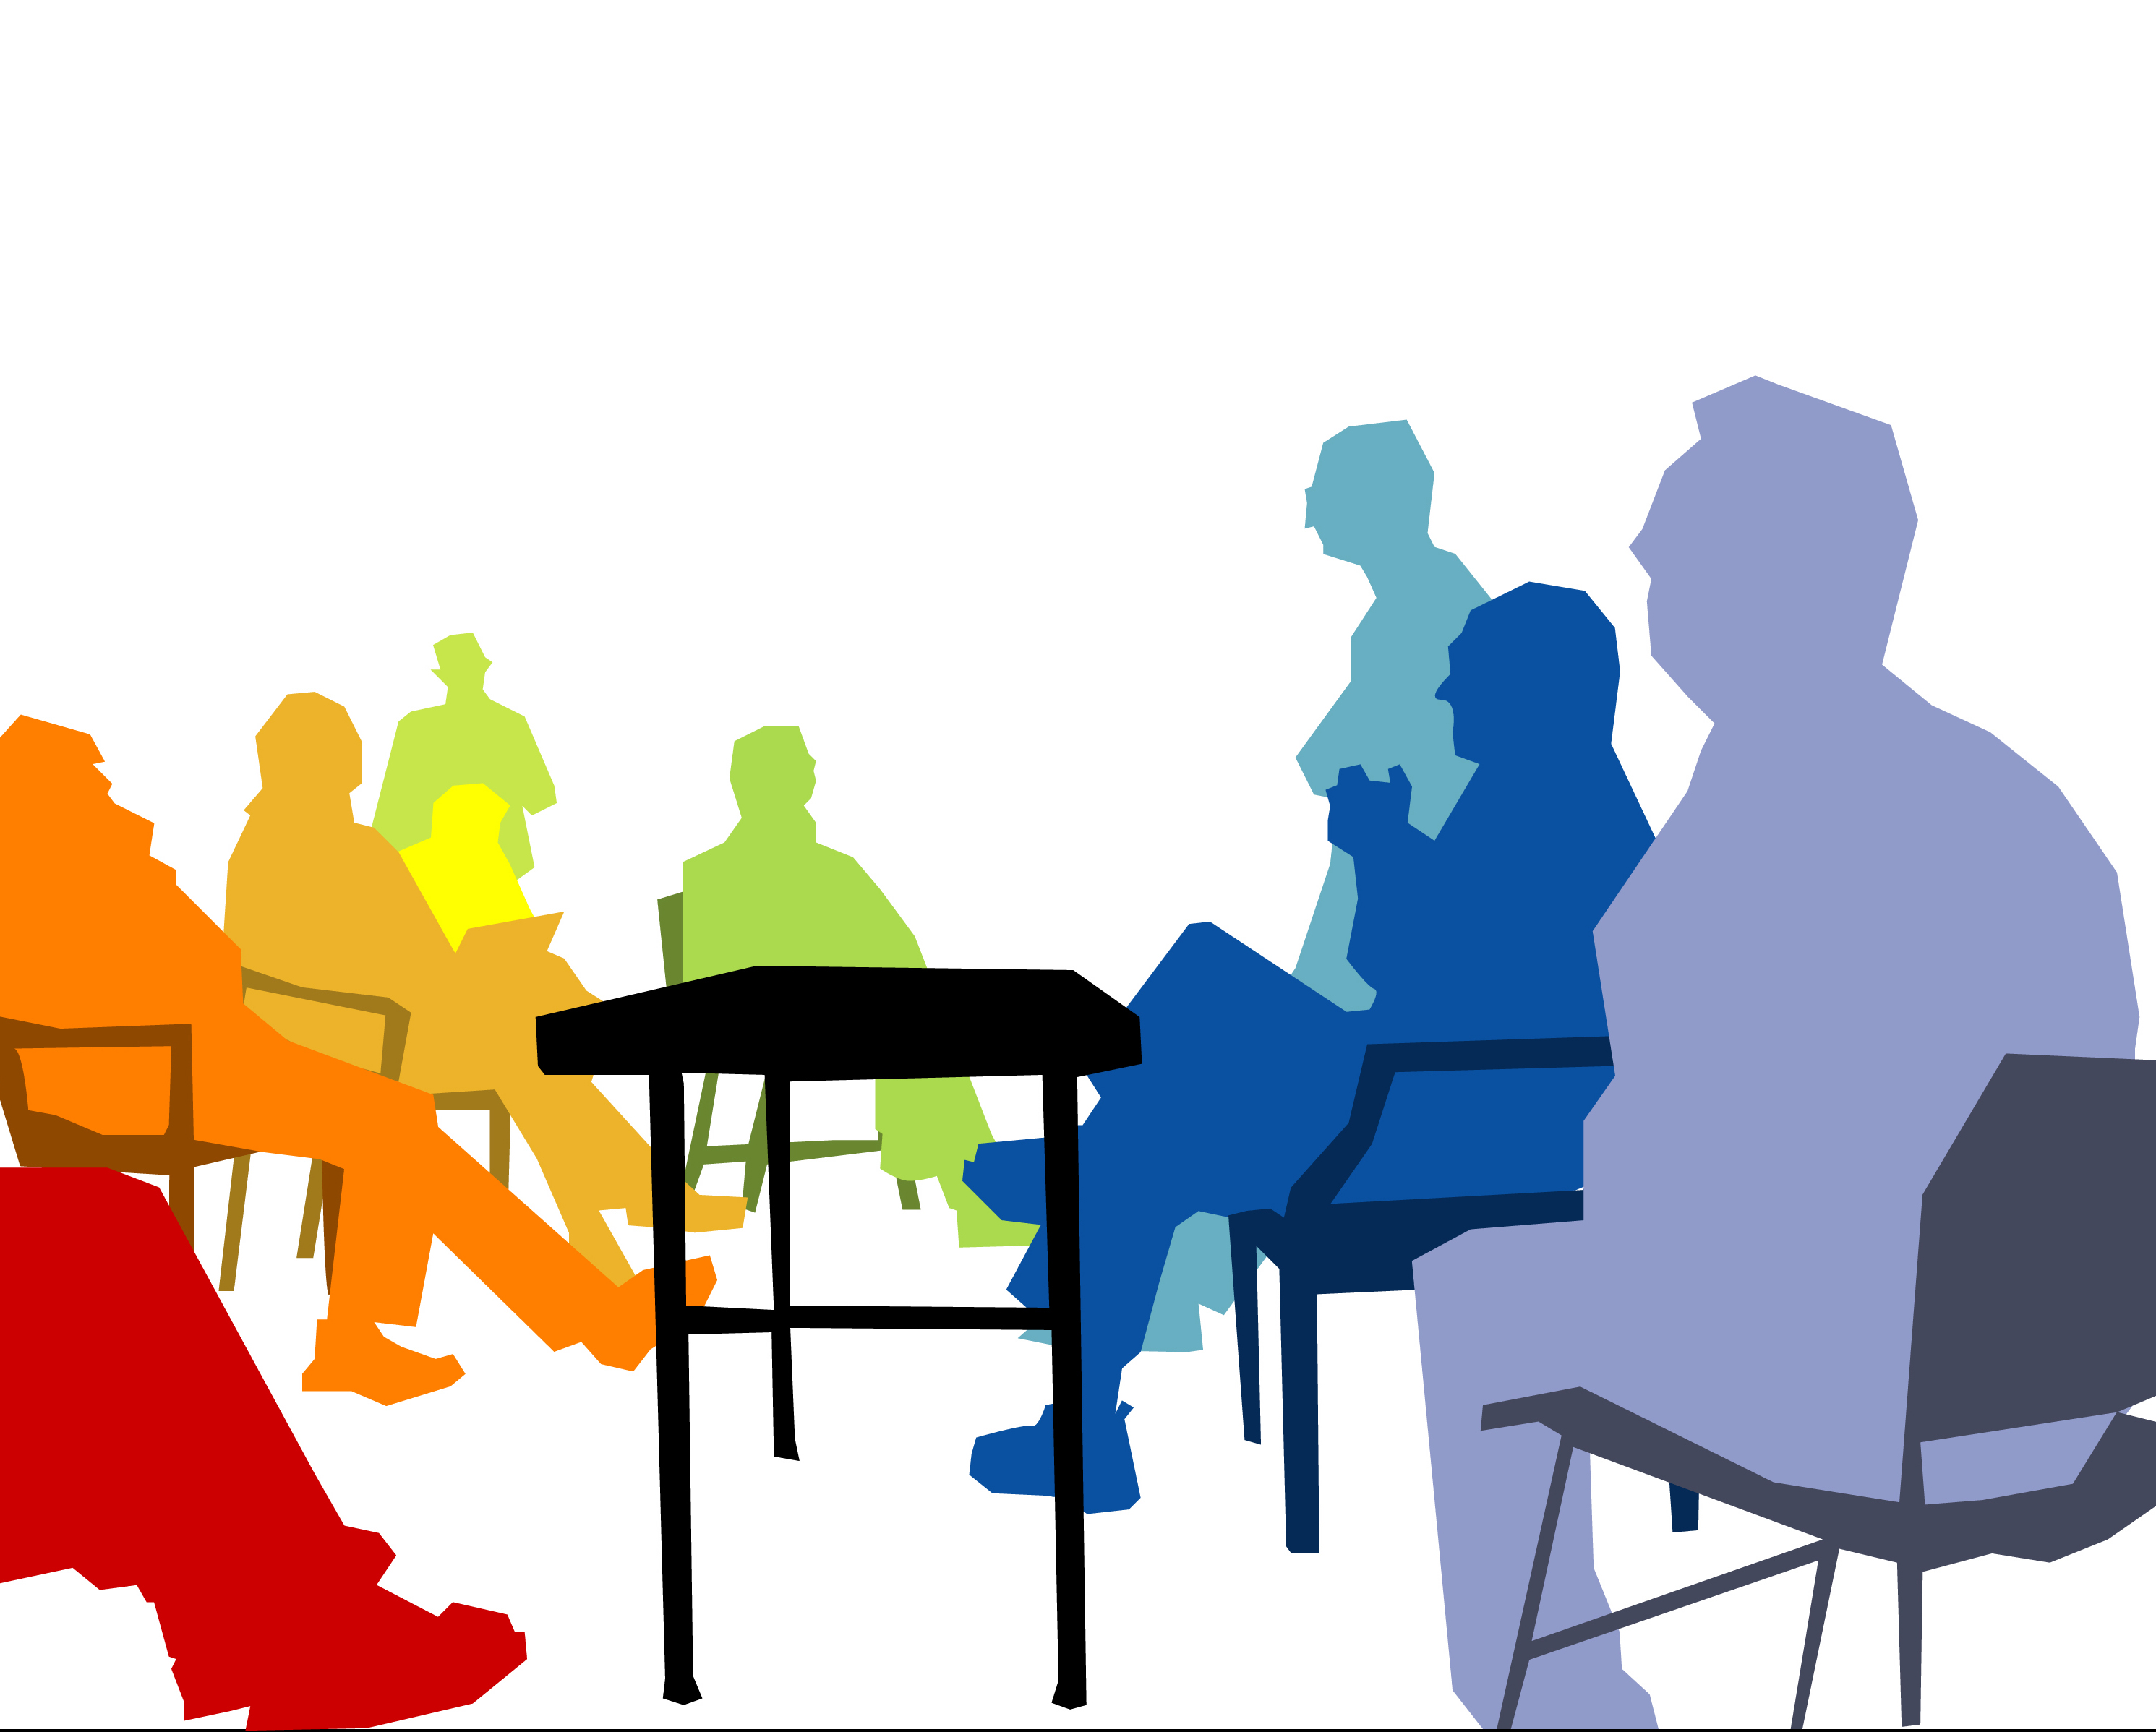 Clipart conference royalty free stock Free Business Meeting Images, Download Free Clip Art, Free Clip Art ... royalty free stock